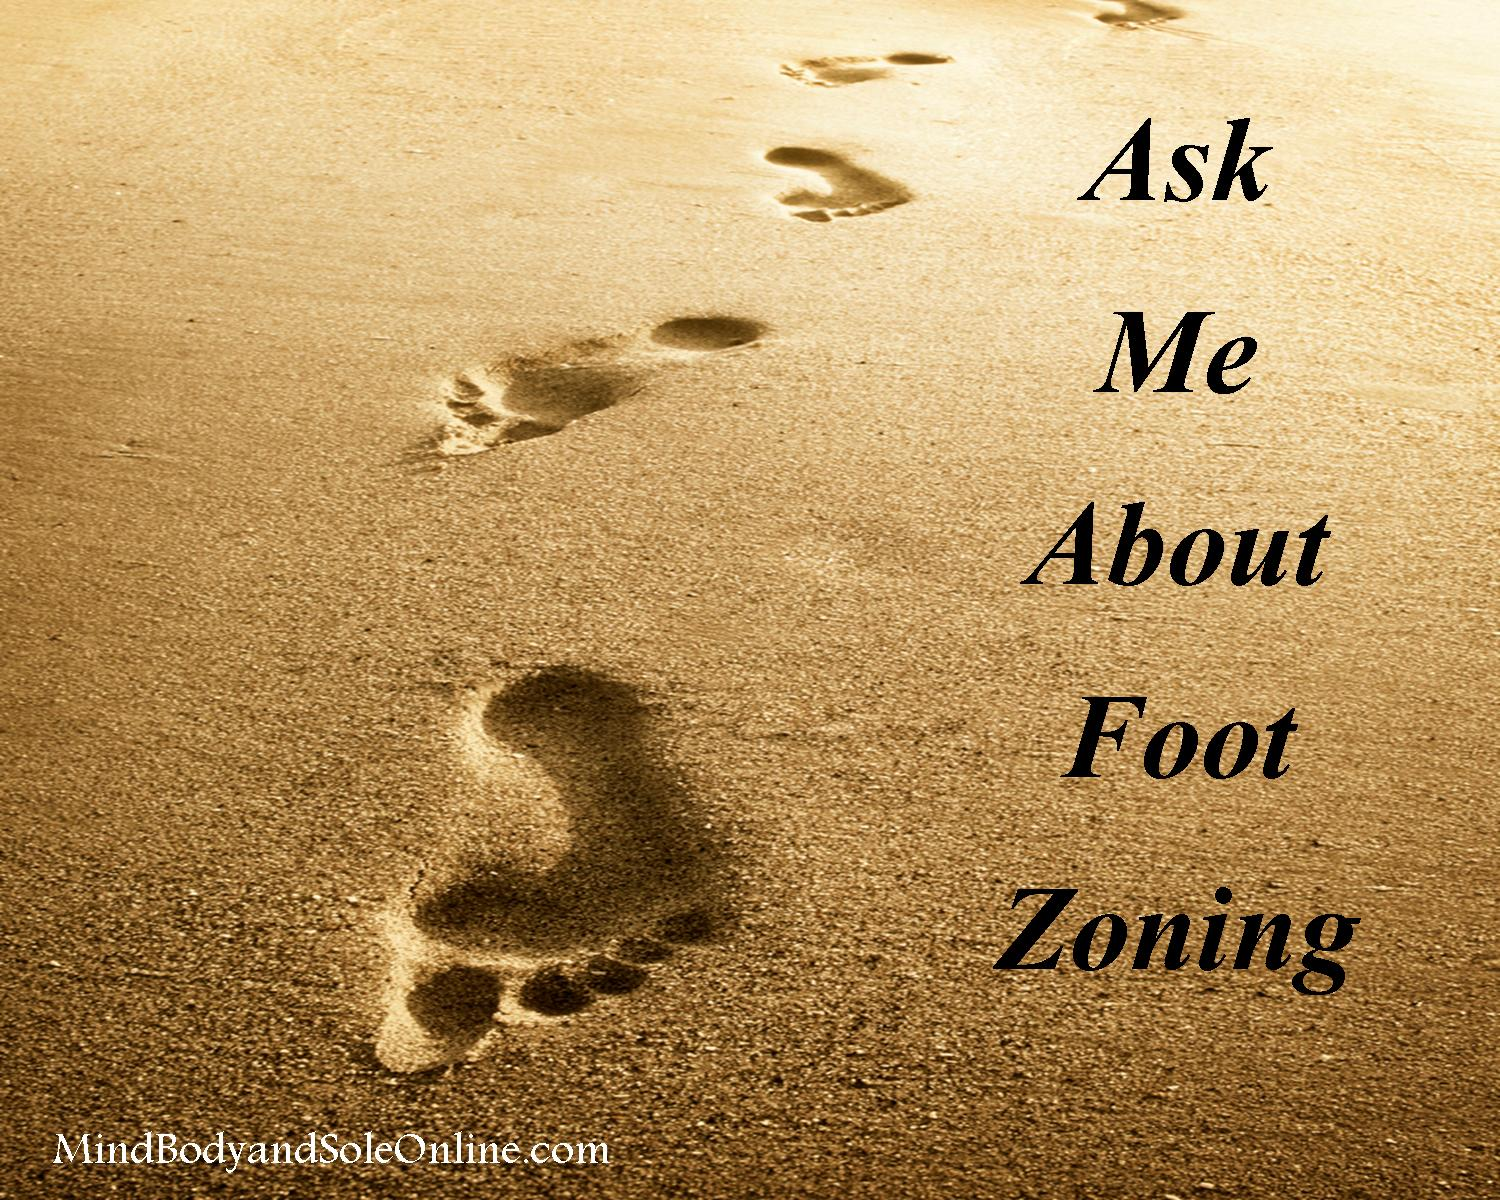 Top 10 Reasons to Take Foot Zoning Classes (+3)